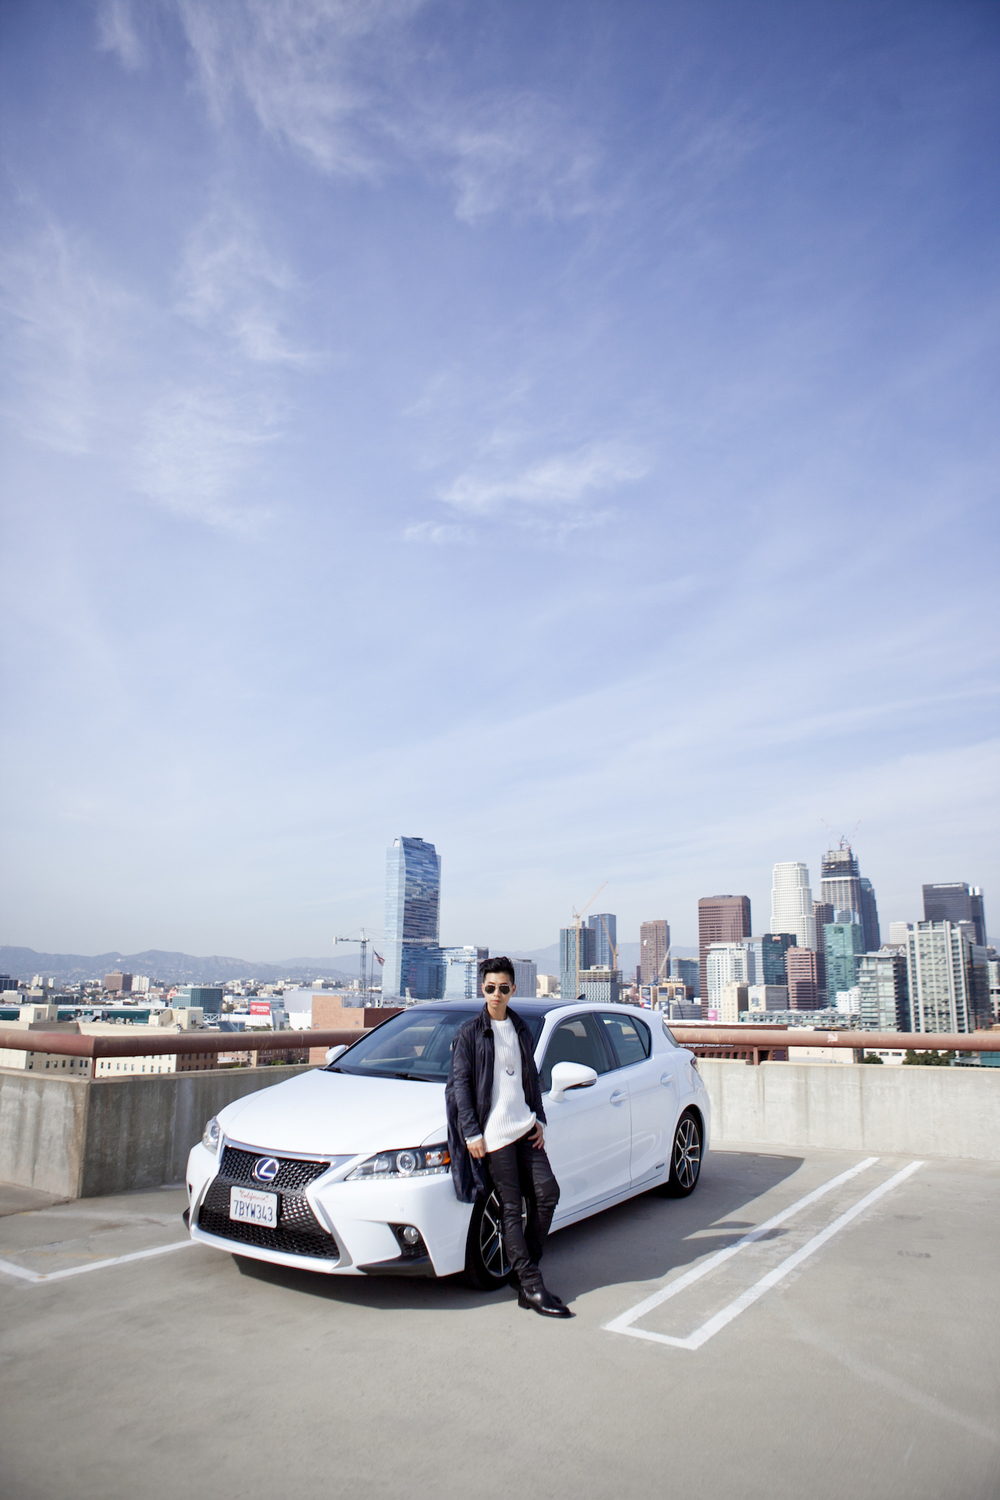 Taking the Lexus CT200H proved to be the ultimate luxury sedan for my foodie experience across Los Angeles